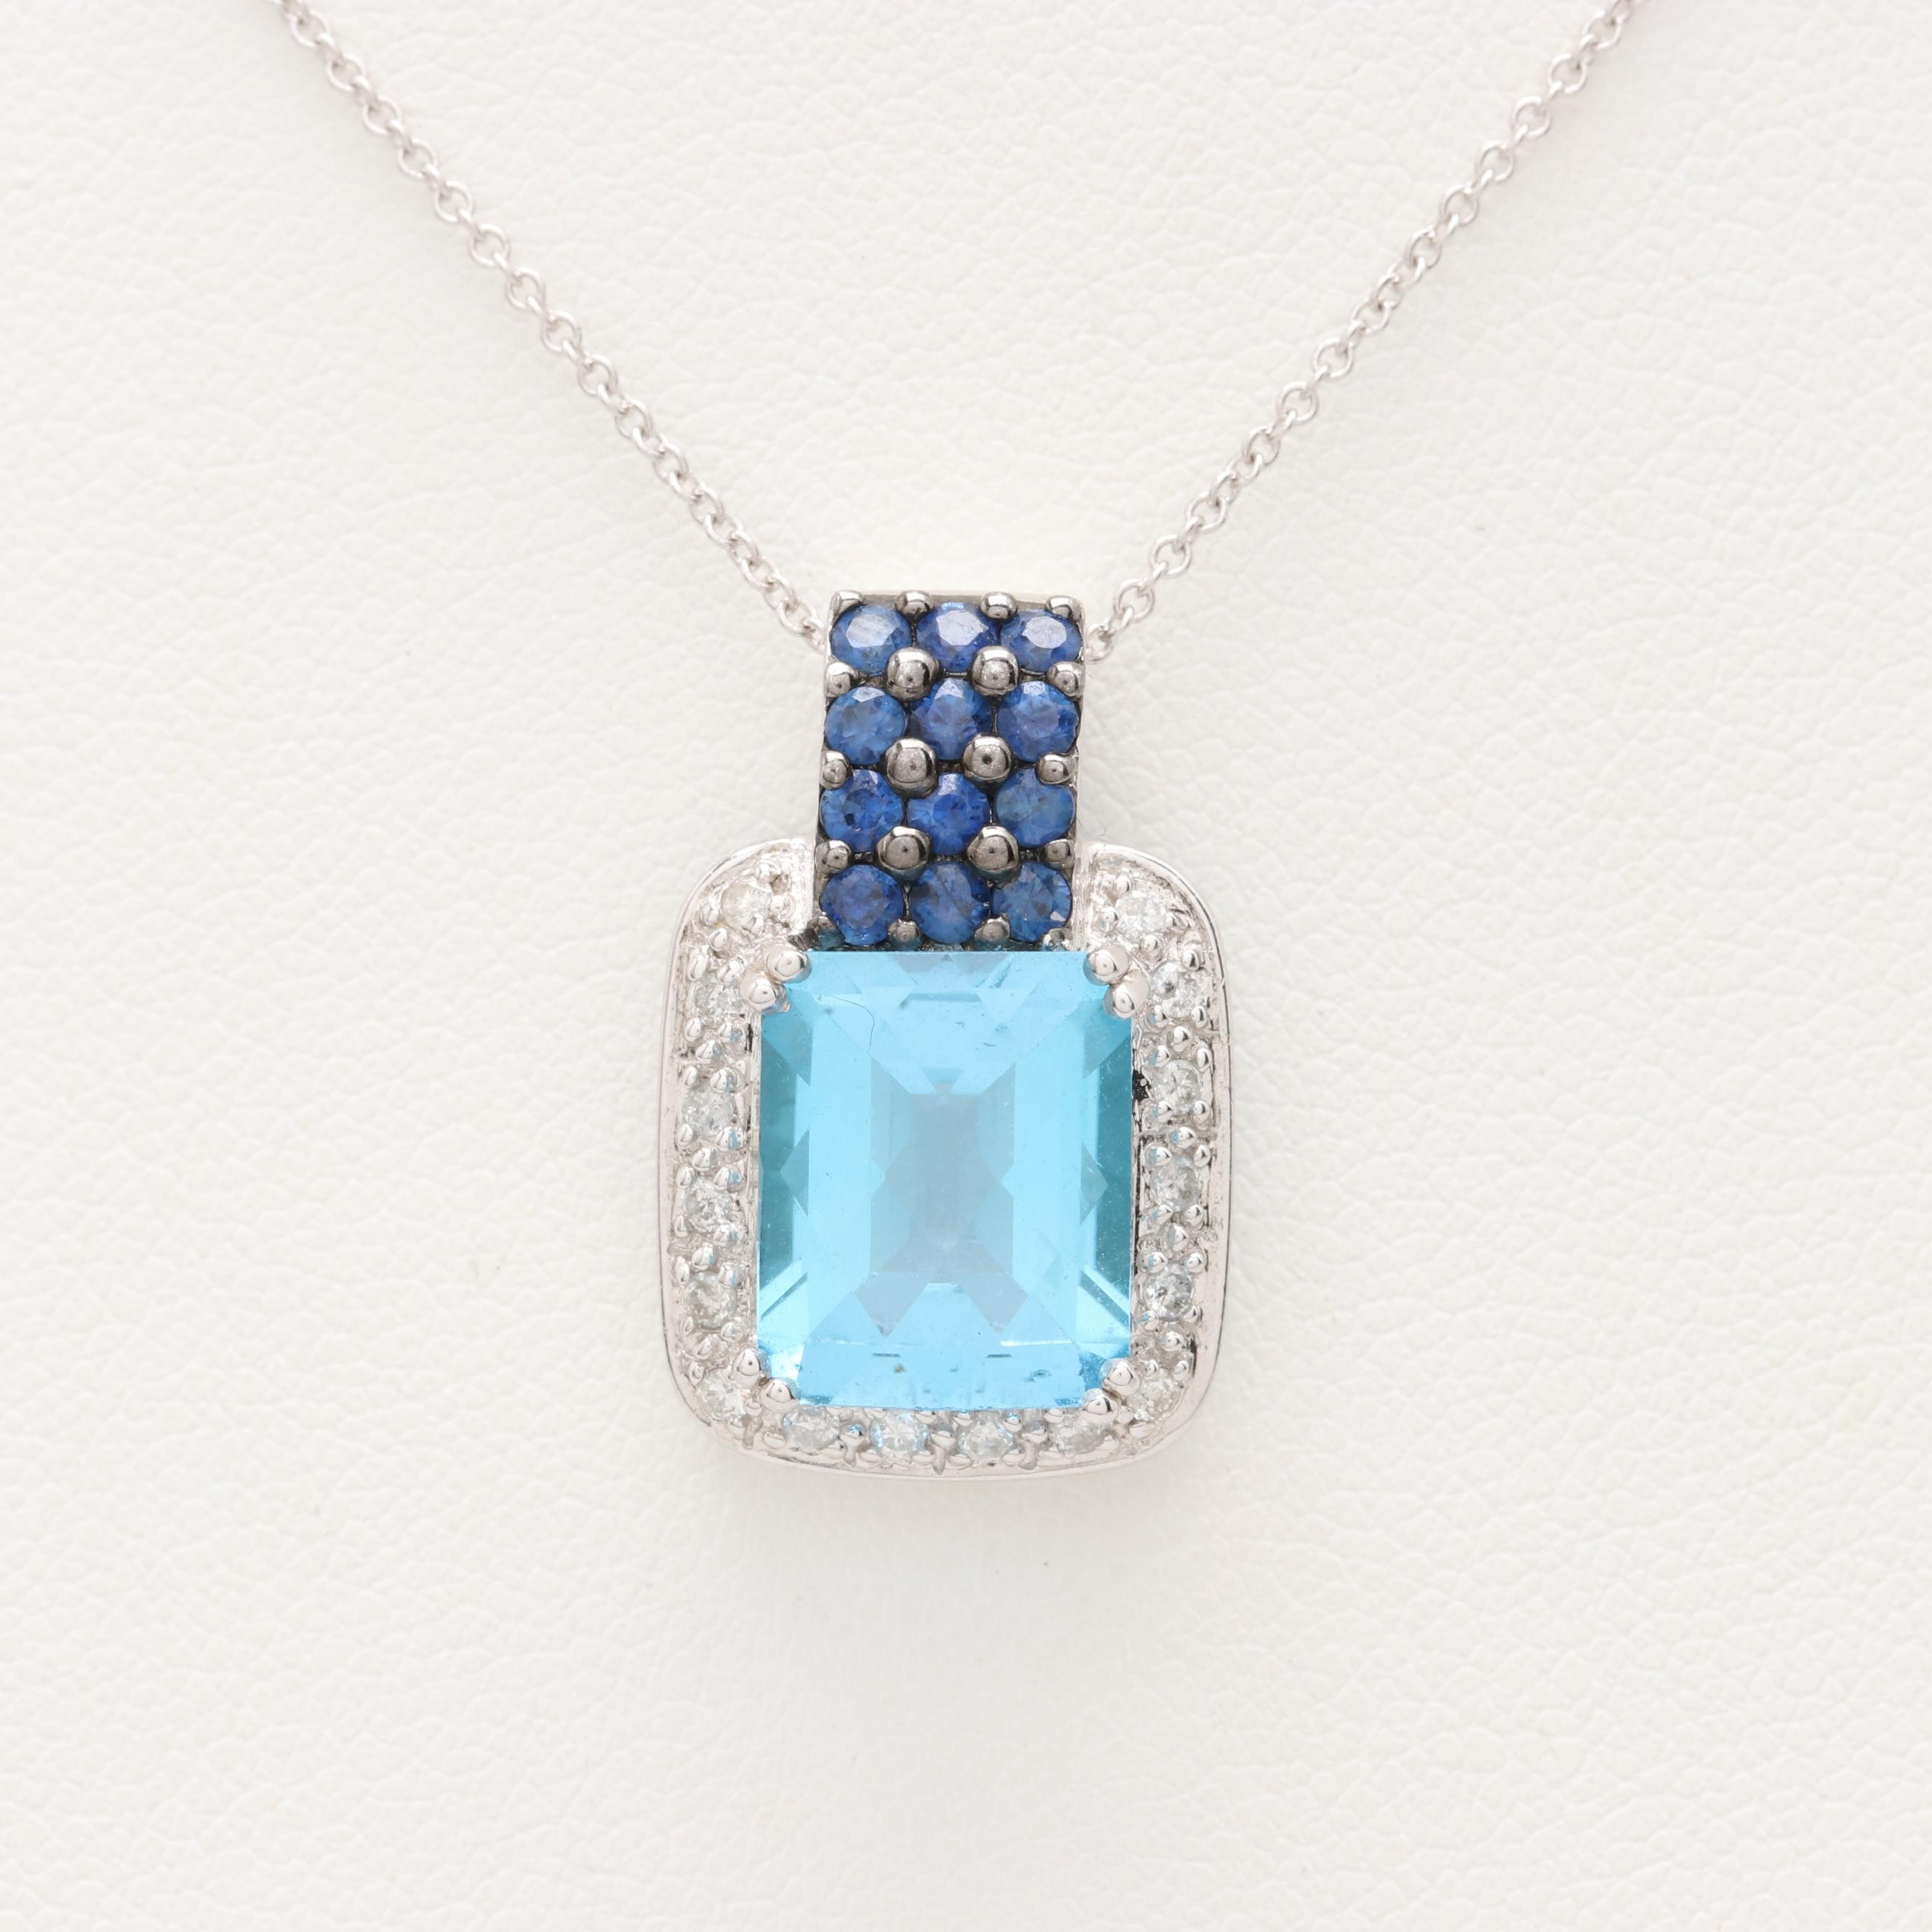 14K and 18K White Gold Blue Topaz, Sapphire and Diamond Necklace